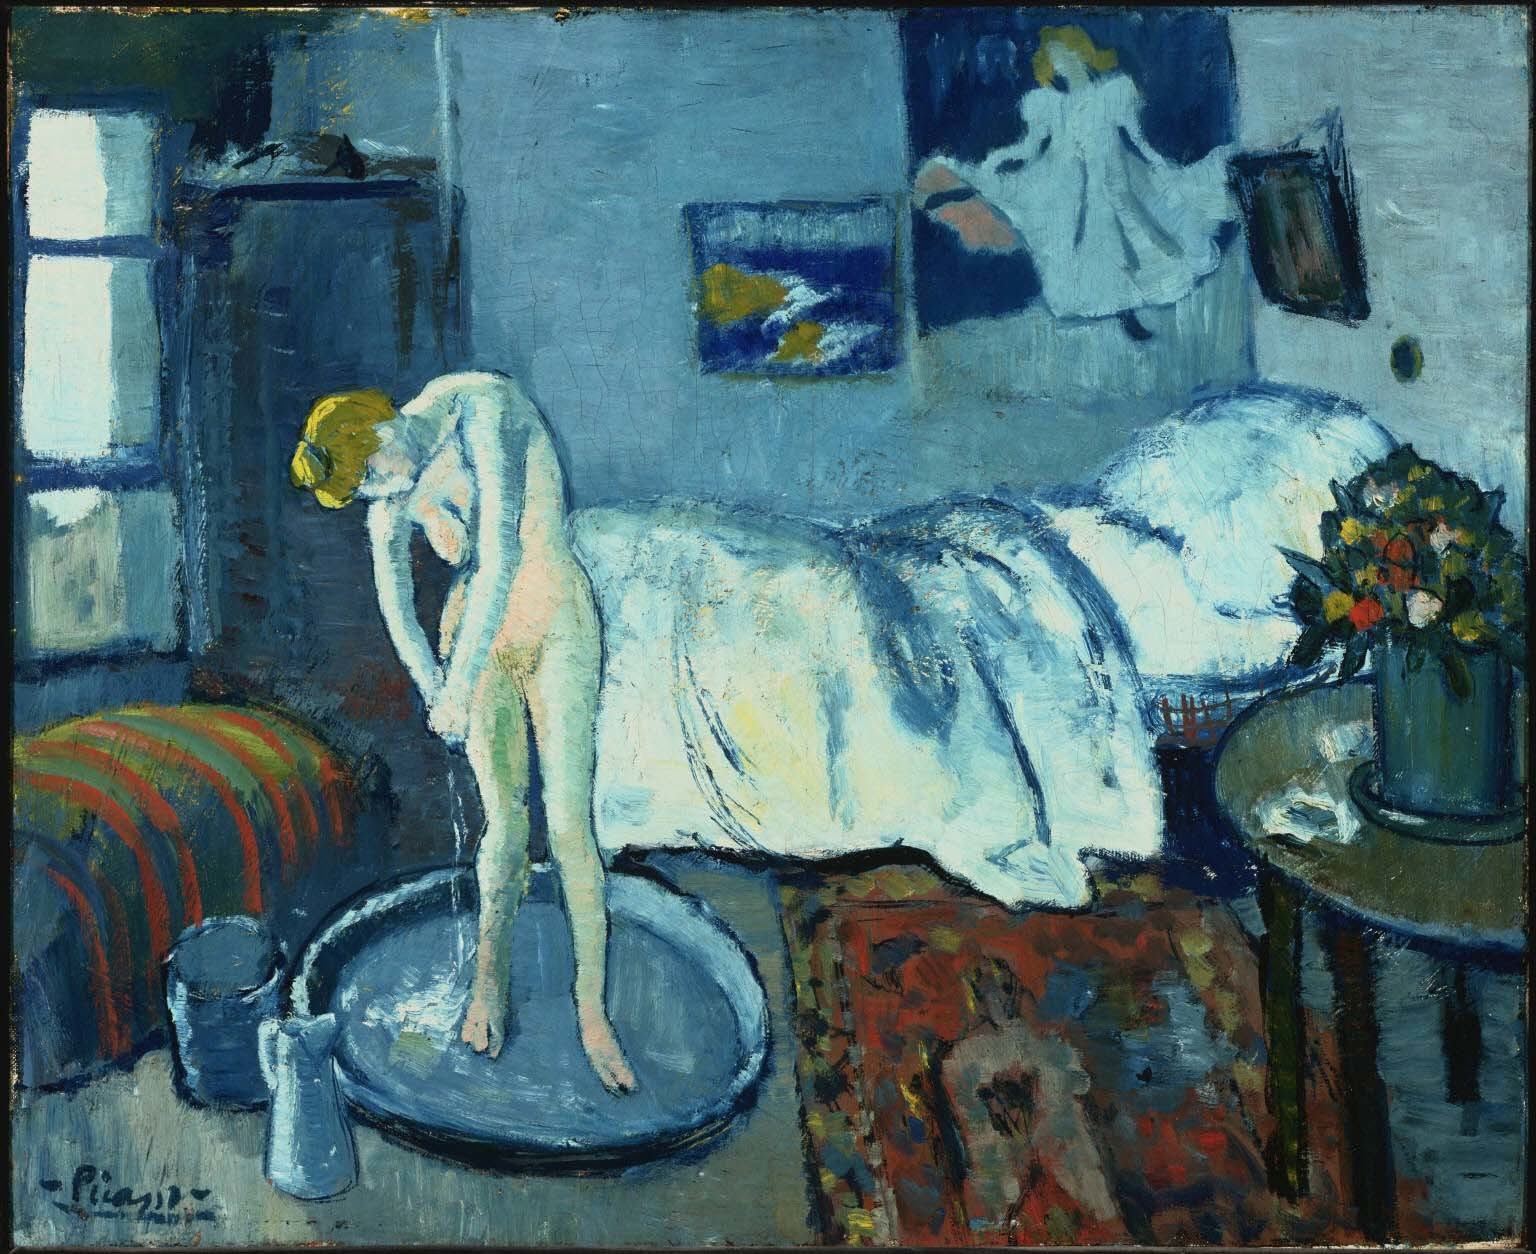 Pablo Picasso, The Blue Room, 1901, 21 x 24 inches, The Phillips Collection, Washington, DC